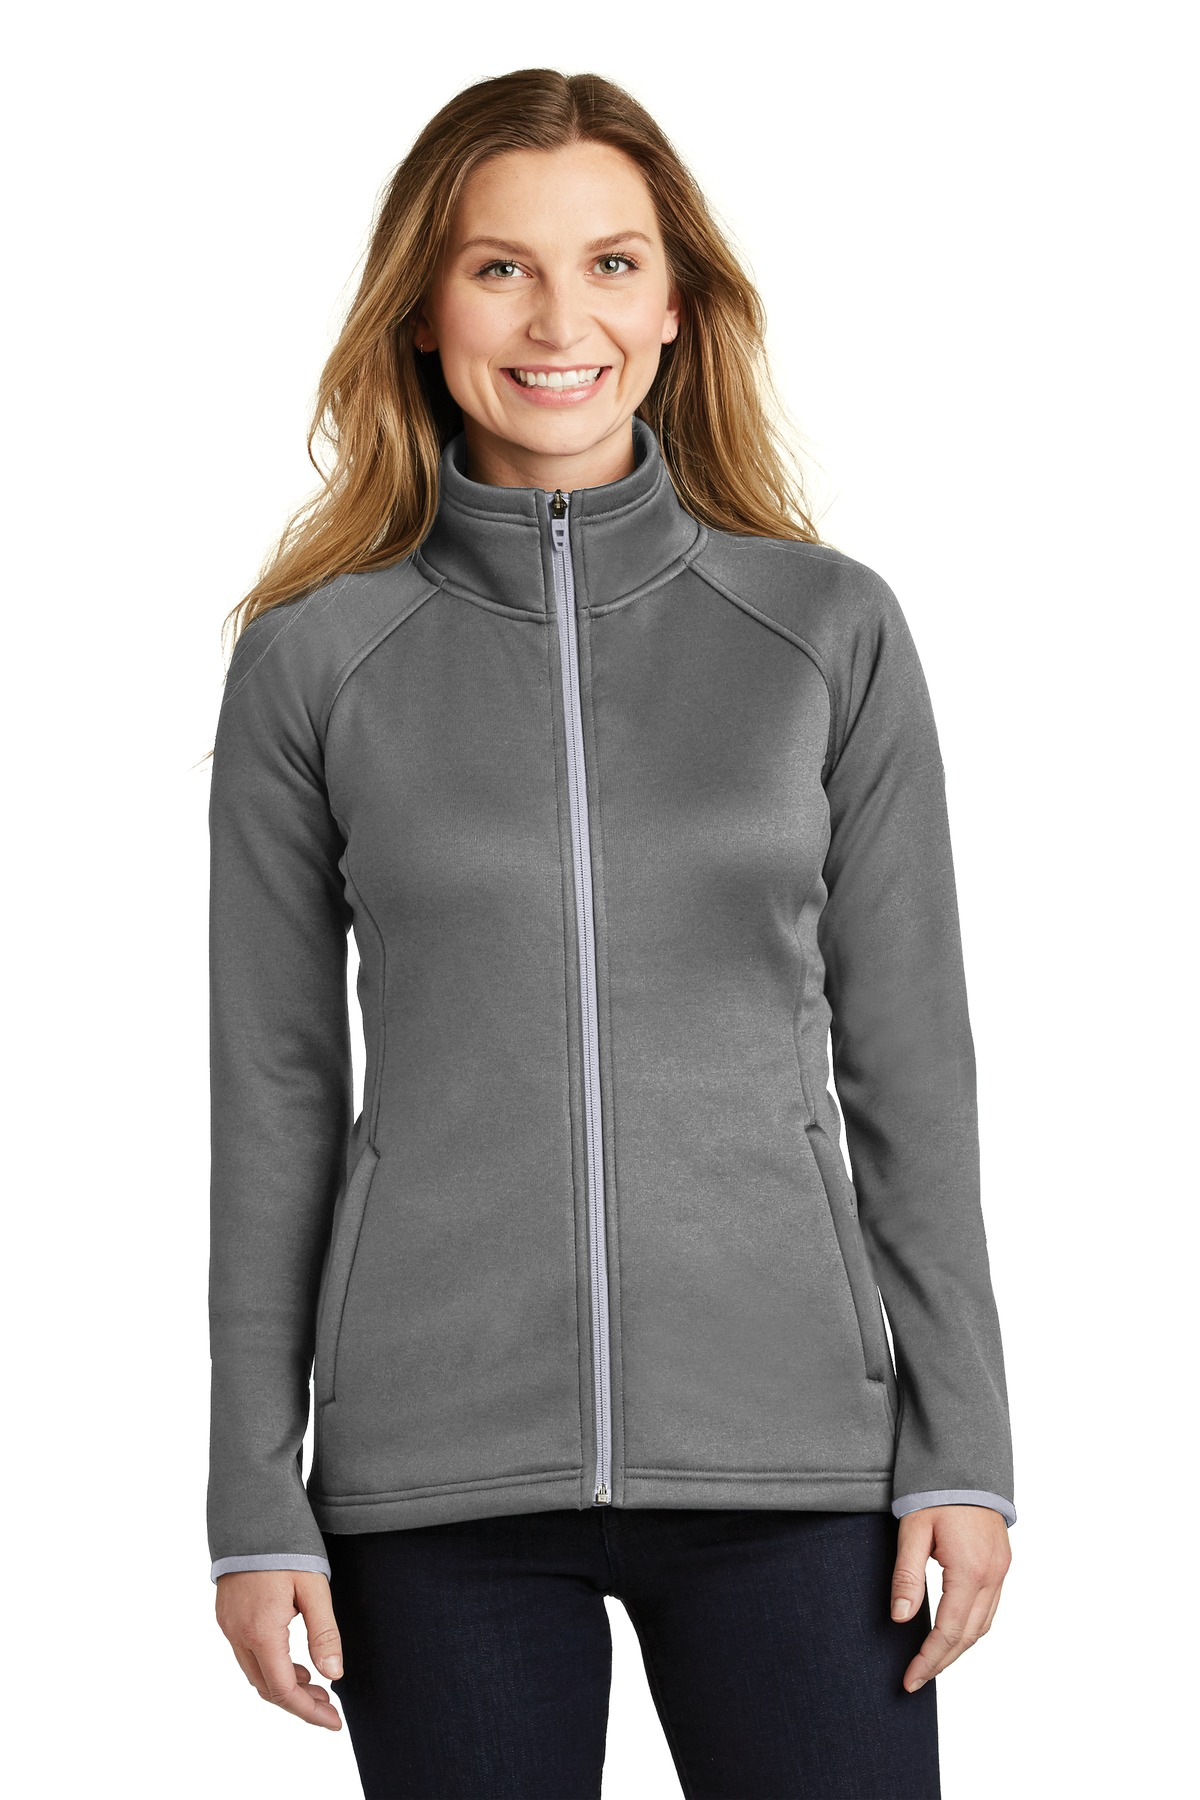 The North Face  ®  Ladies Canyon Flats Stretch Fleece Jacket. NF0A3LHA - TNF Medium Grey Heather